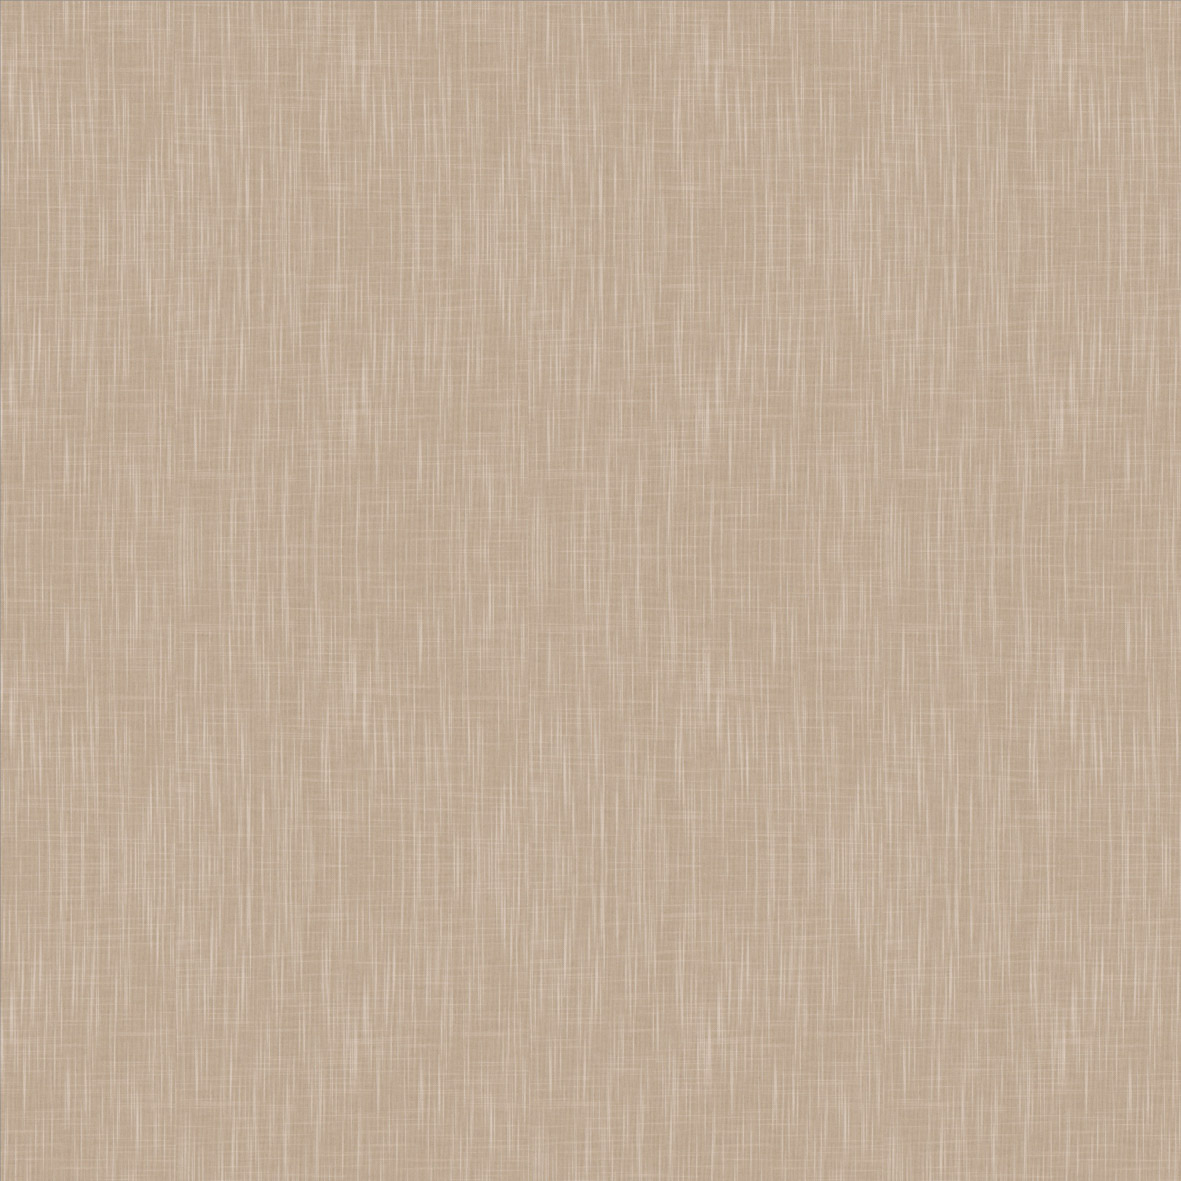 Roller_Swatch_Shantung_Champagne_RE441